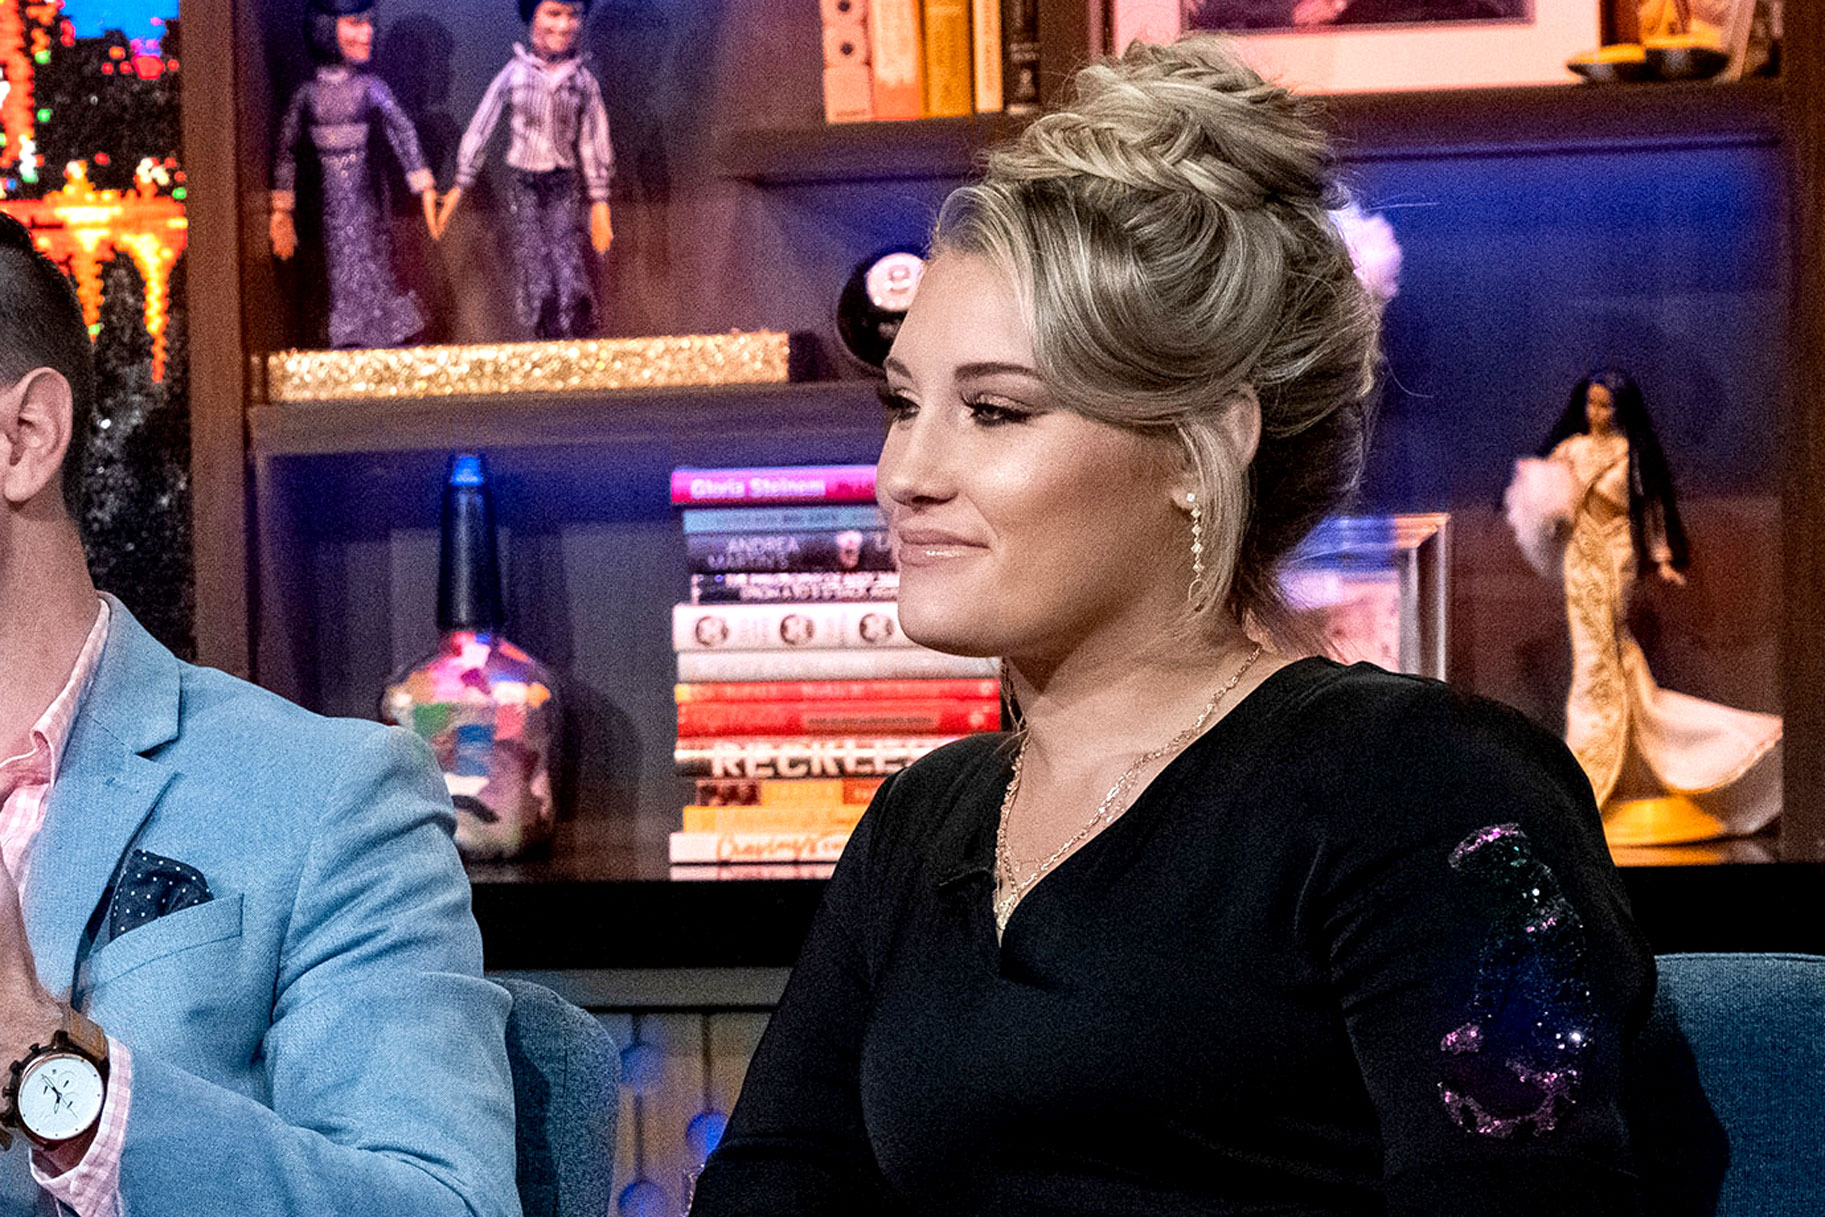 June Foster on Watch What Happens Live with Andy Cohen